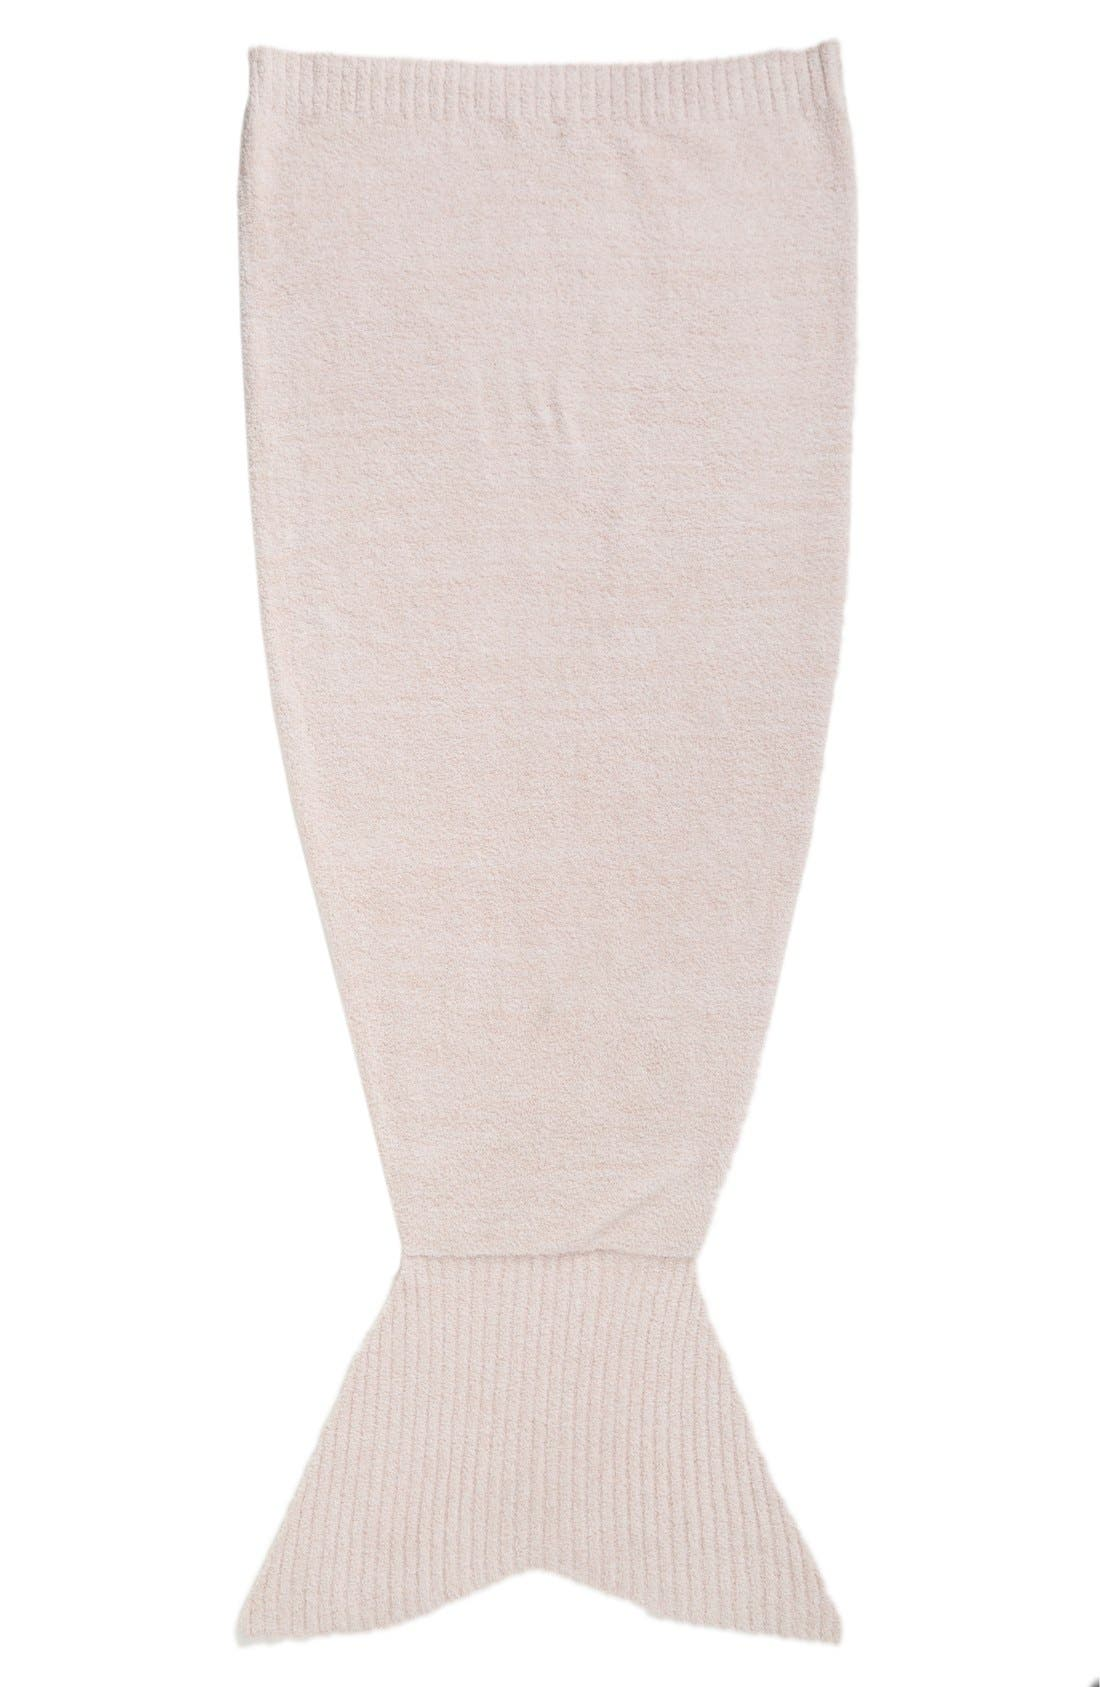 Barefoot Dreams Mermaid Tail Throw,                         Main,                         color, Dusty Rose